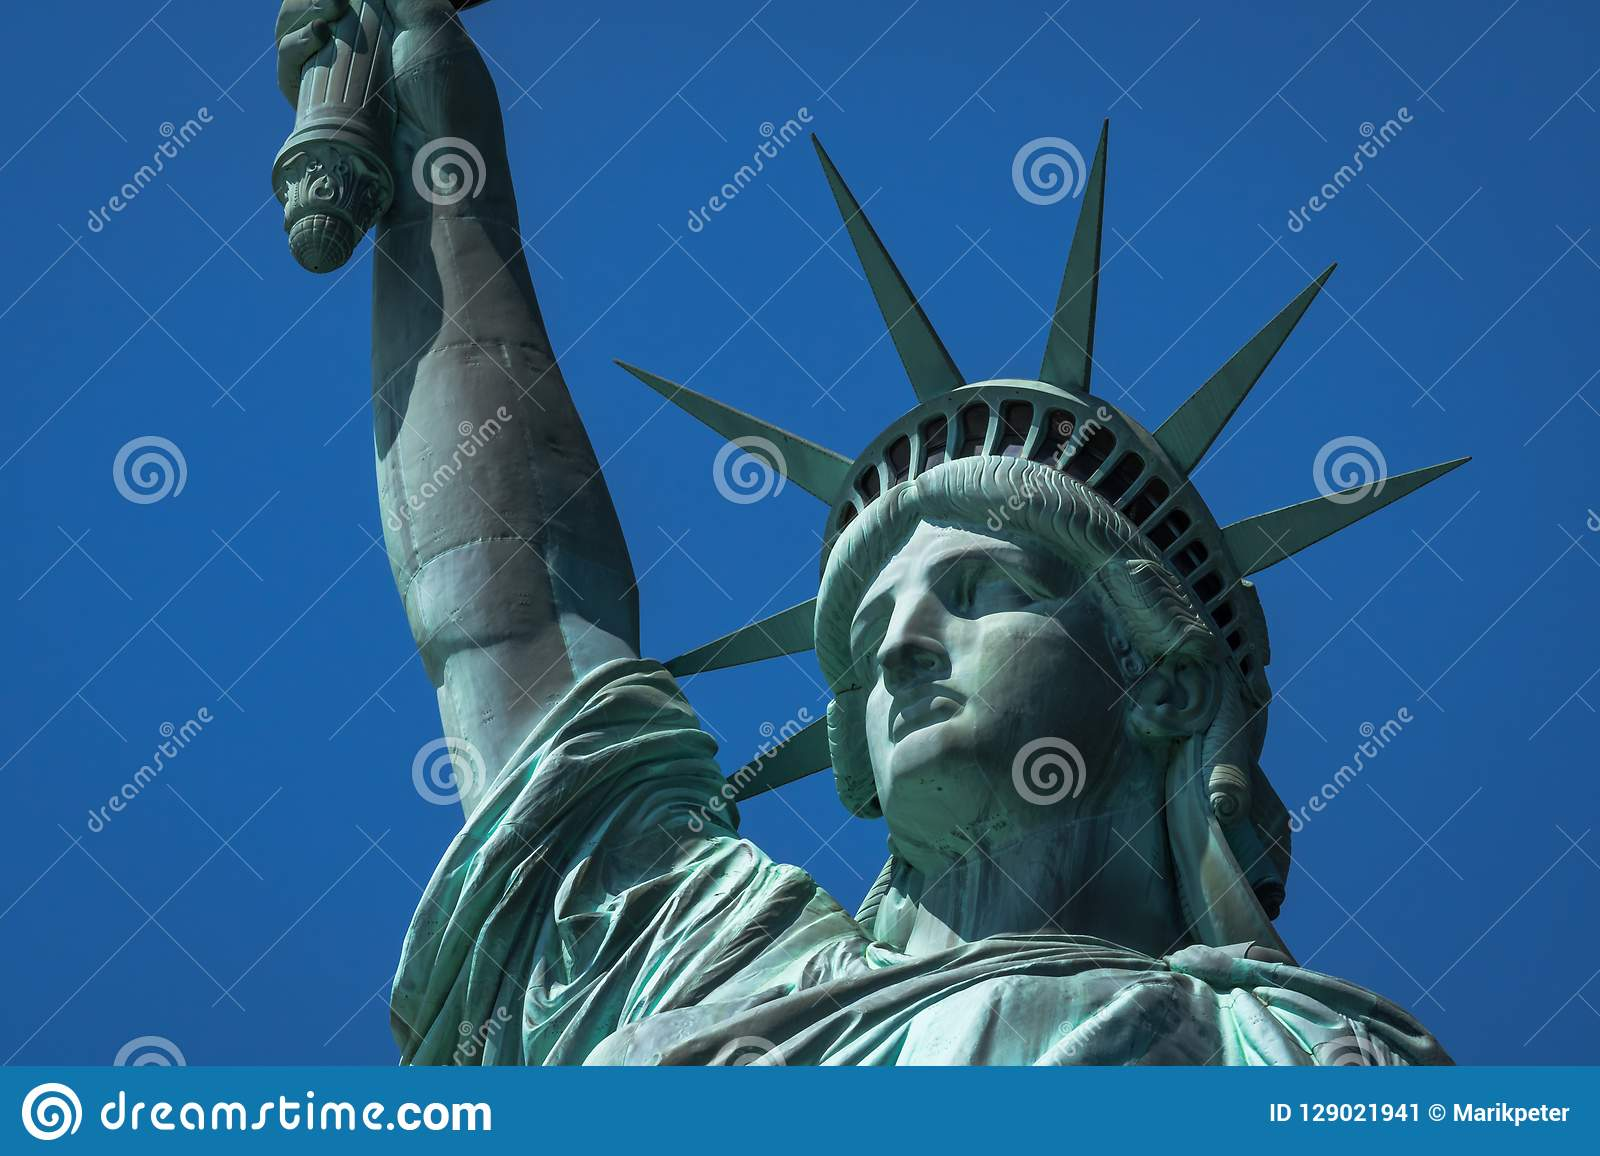 e24c7f933dd04 Royalty-Free Stock Photo. Close-up of the crown and face of Statue of  Liberty in New York